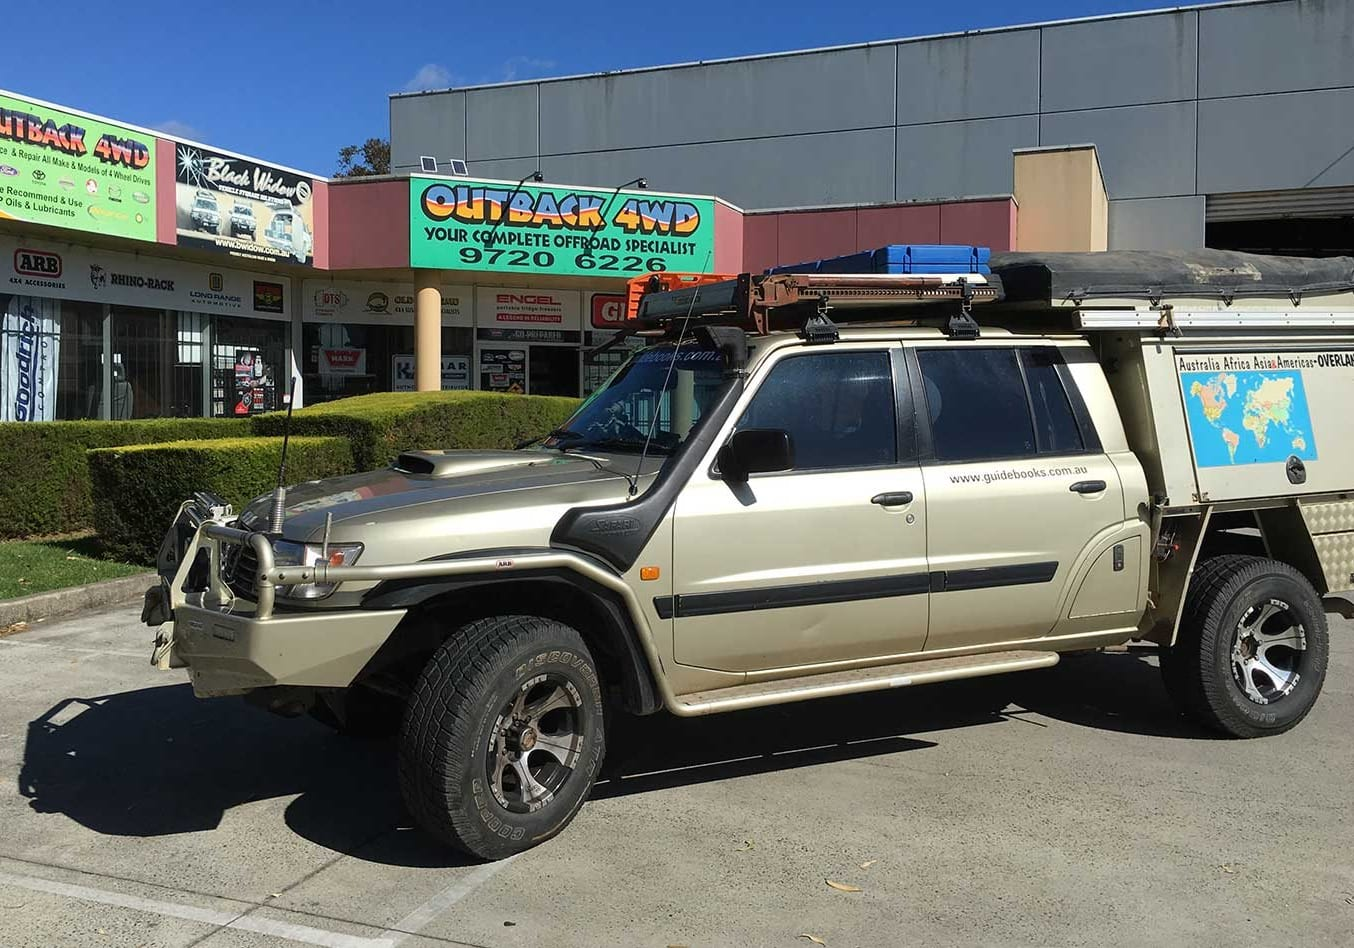 2001 Nissan Patrol long-term review update 4x4 Shed